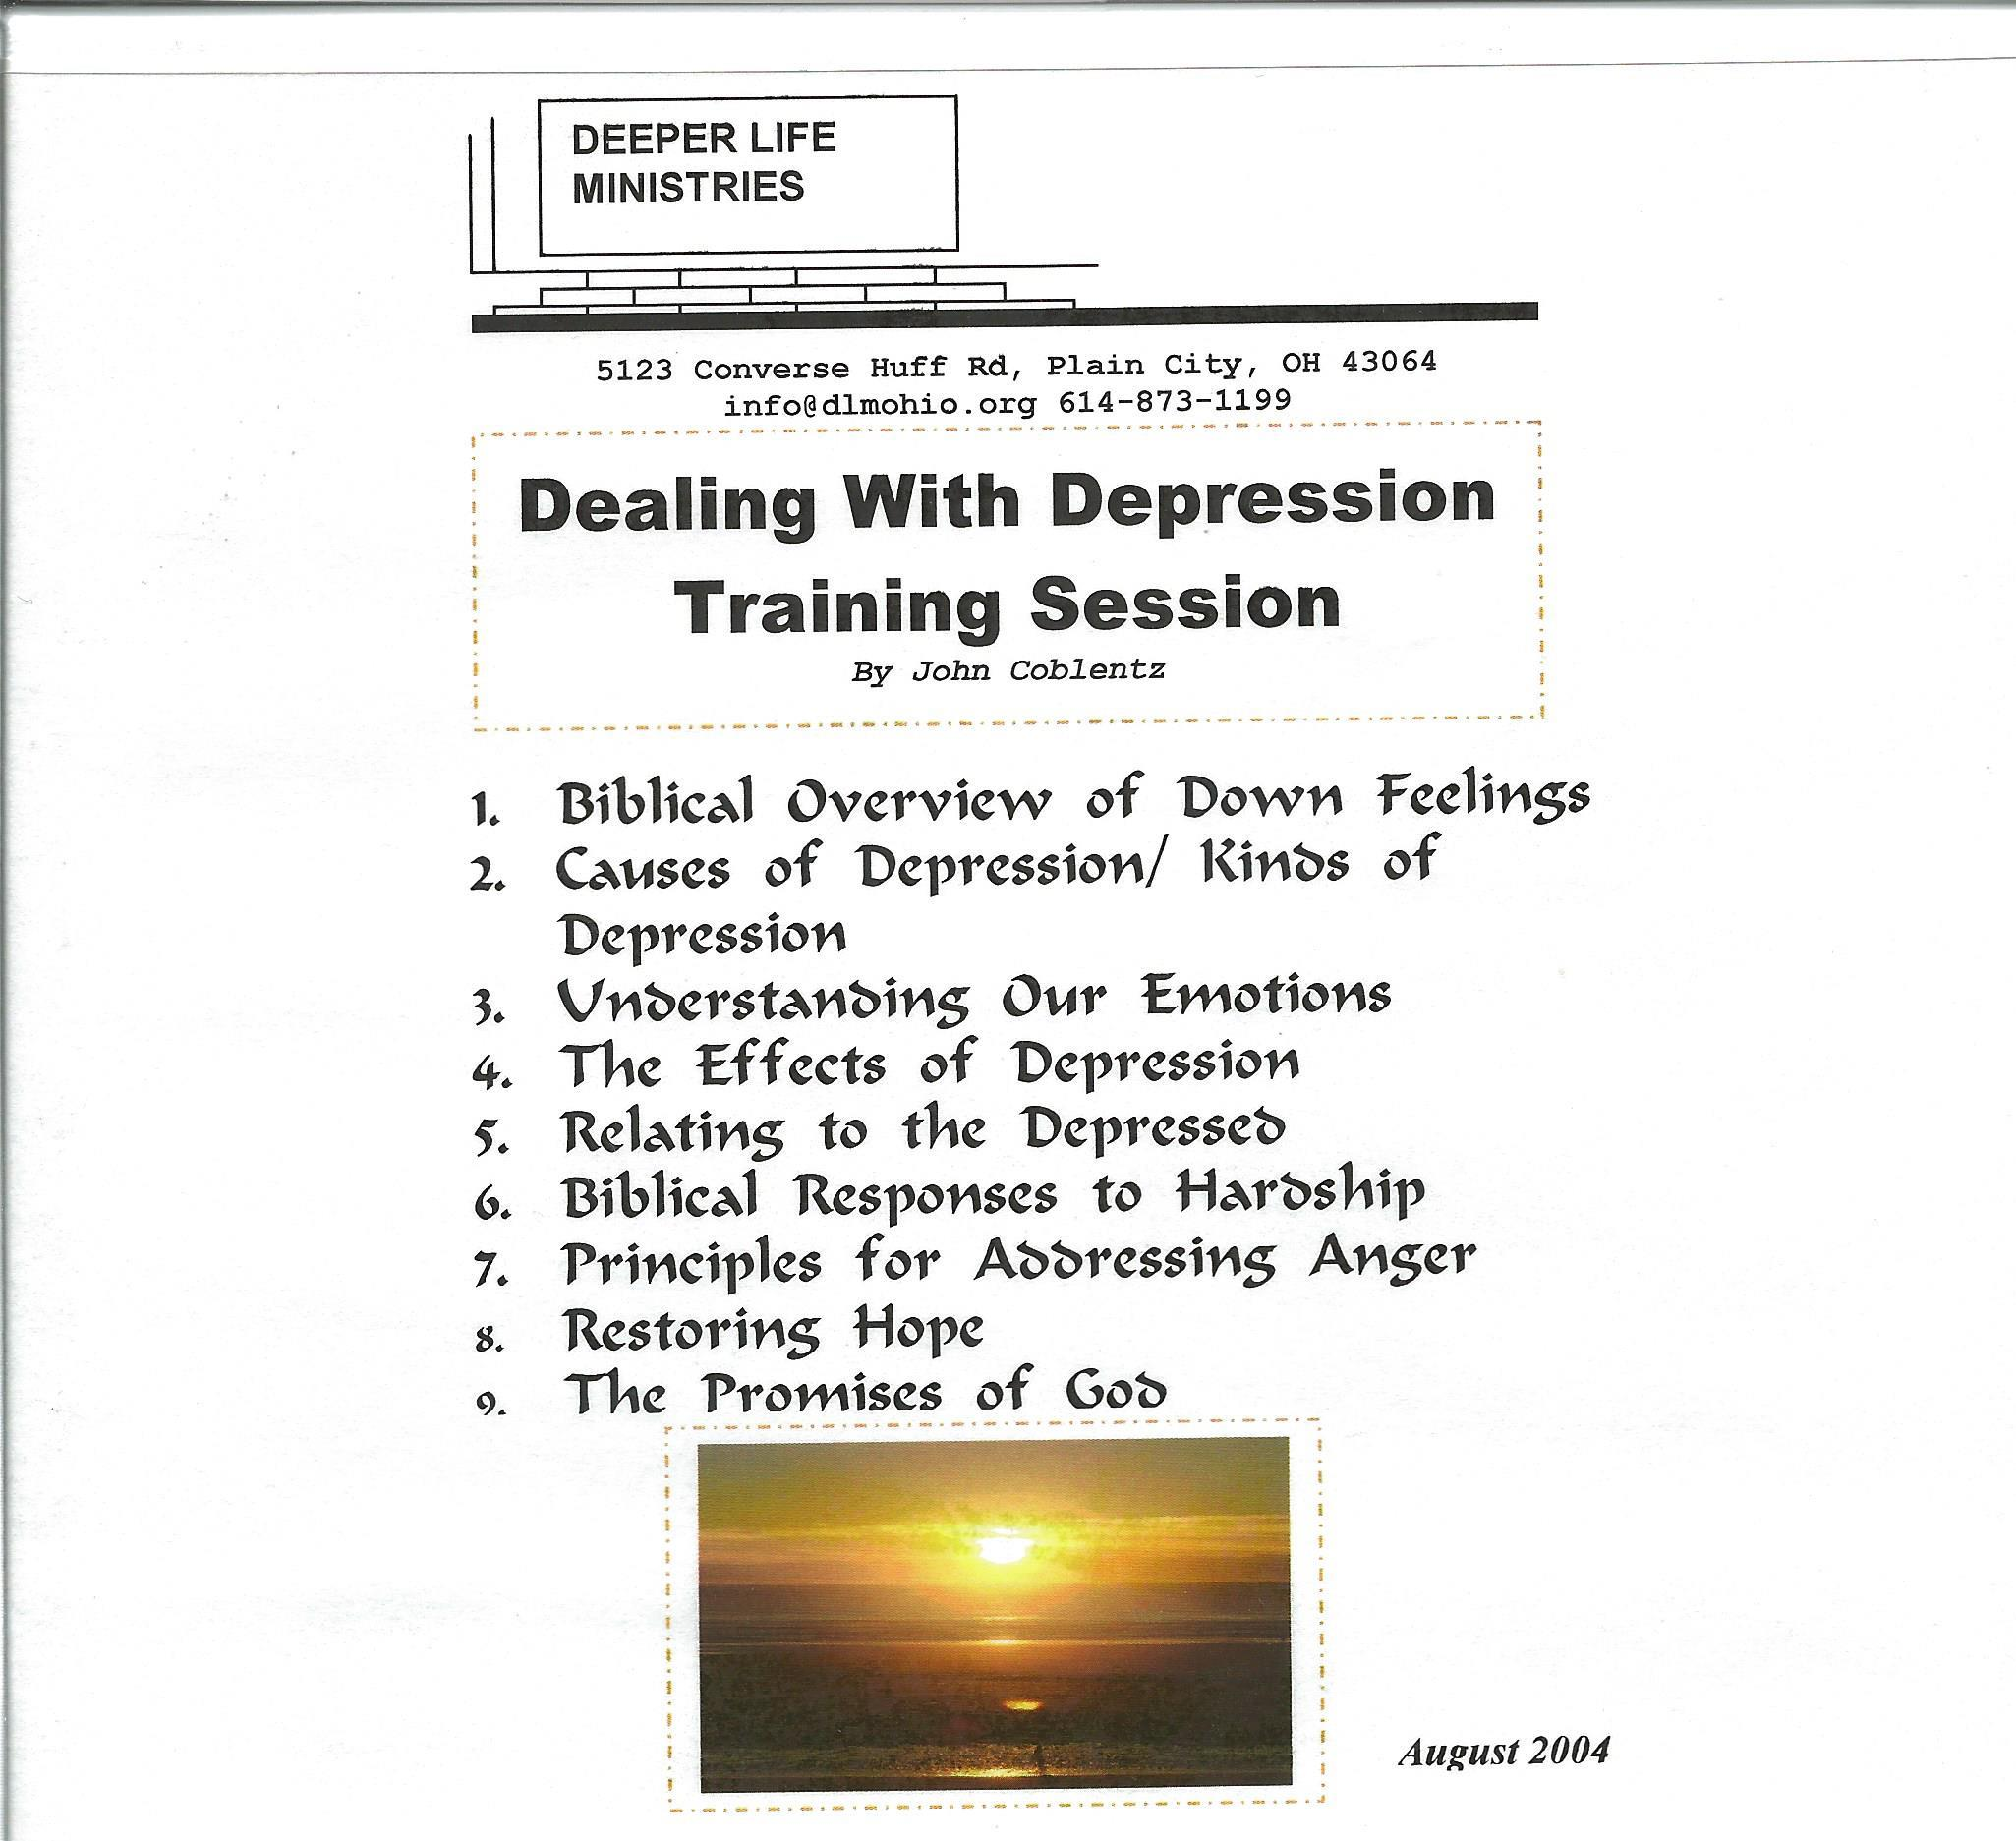 DEALING WITH DEPRESSION TRAINING SESSION 9 CD album